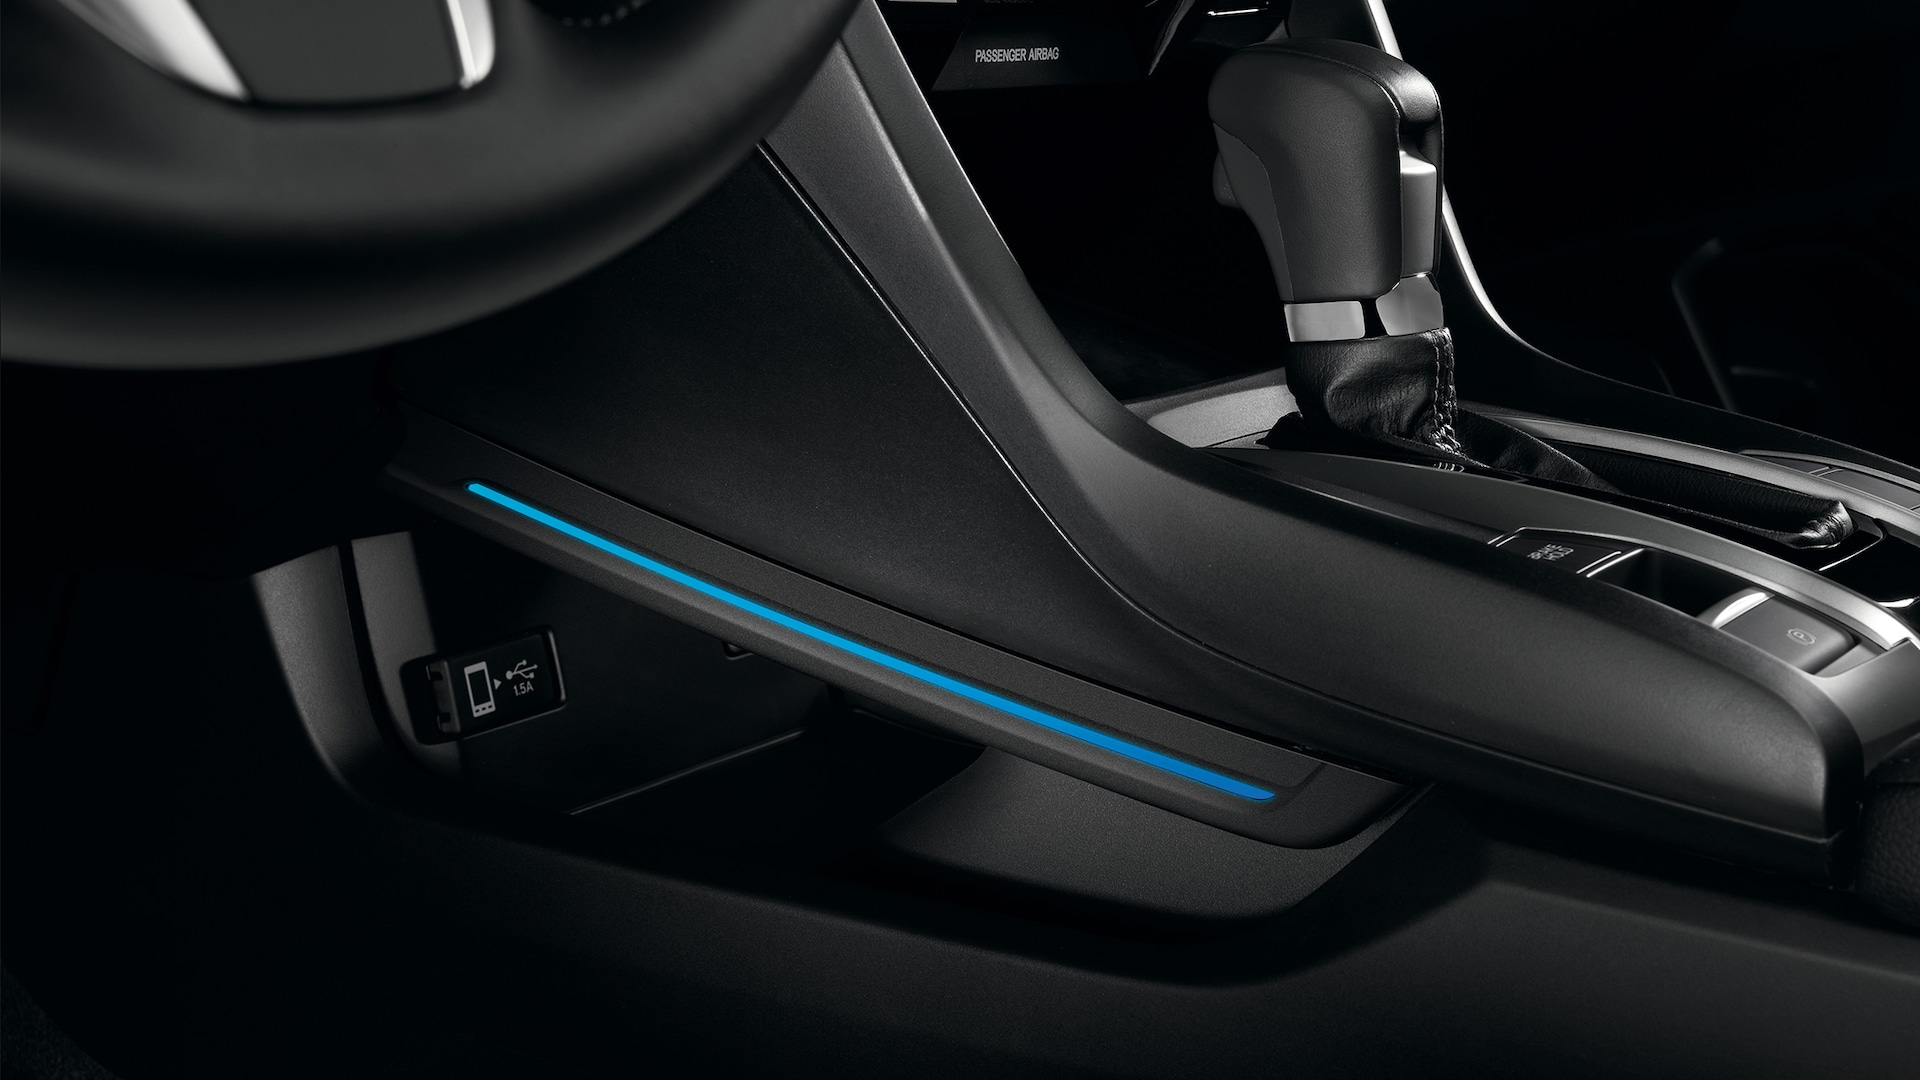 Accessory interior console illumination detail in the 2020 Honda Civic Coupe.